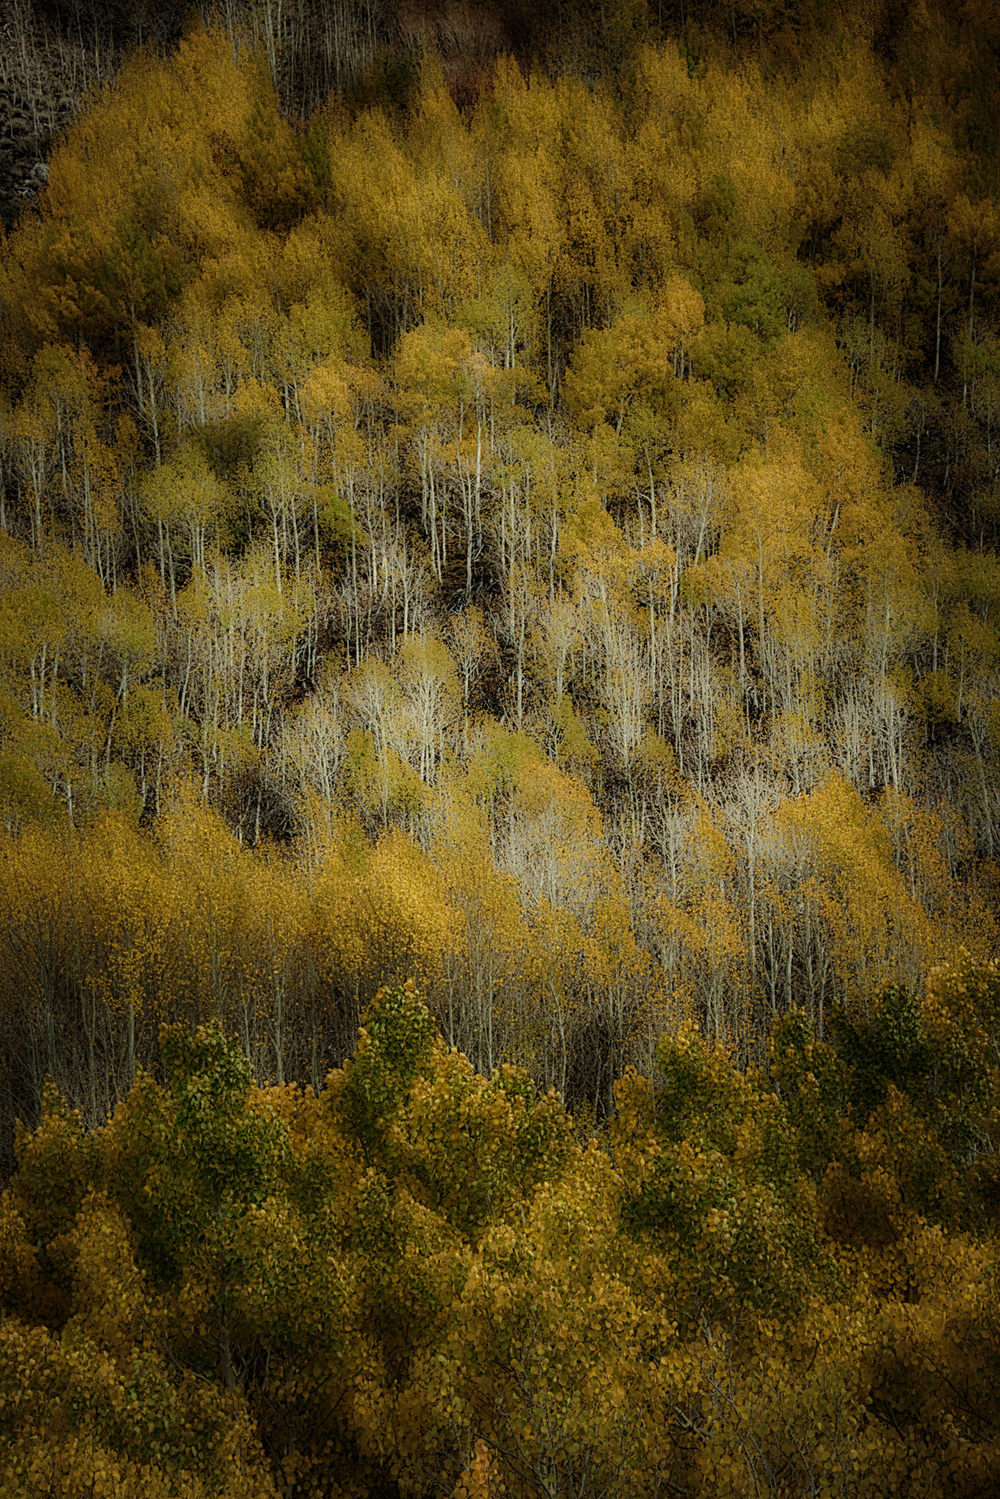 """Aspens"" by David Pinkham"